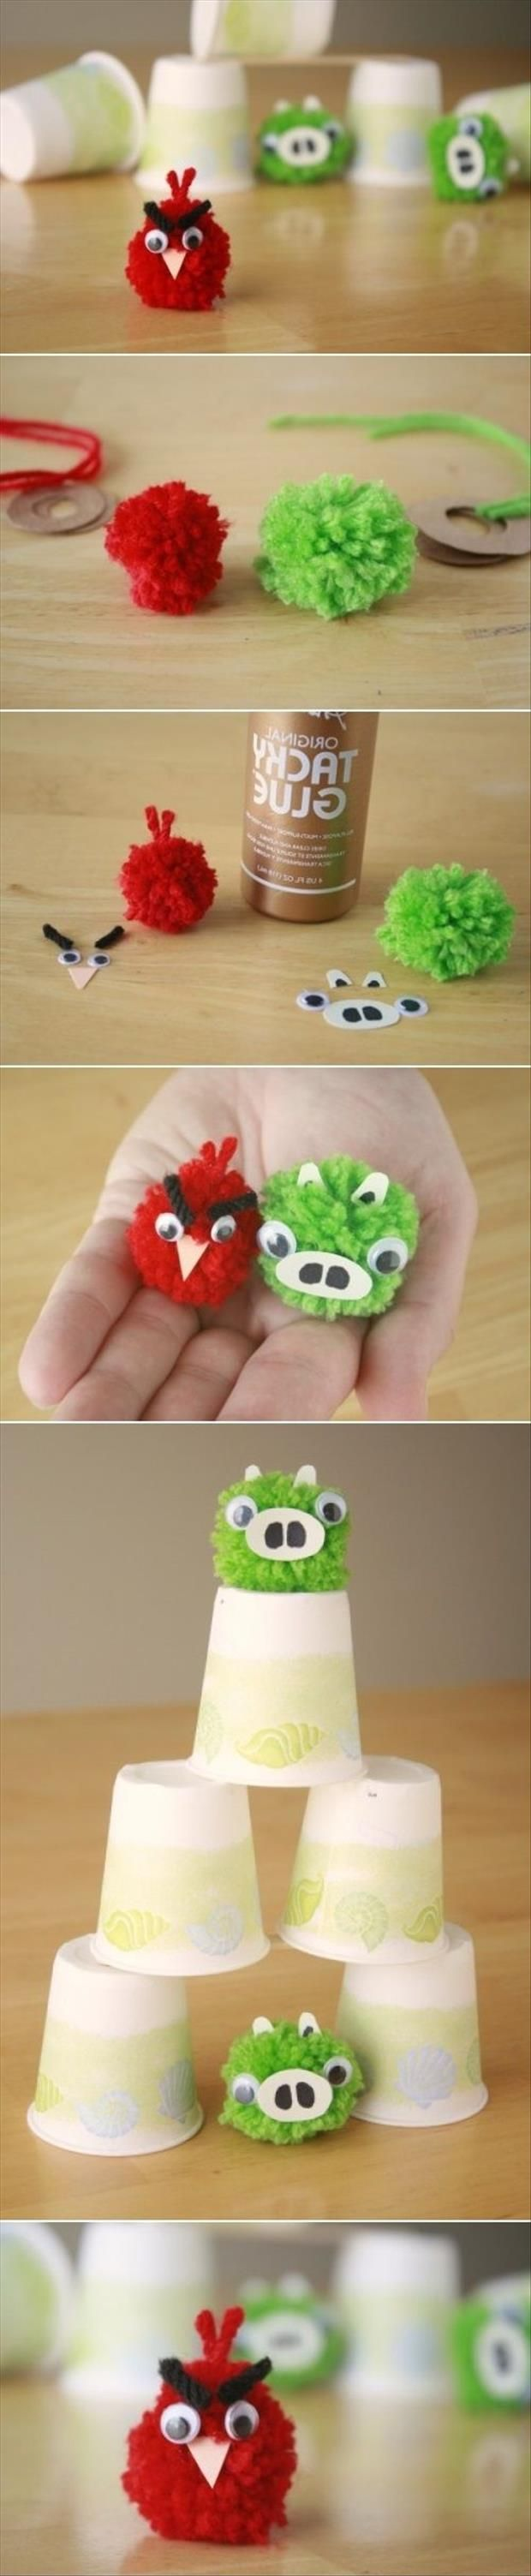 My kids are going to LOVE this!!!!   That is one angry bird!  43 really great craft ideas, check them out. From a Dump a Day!